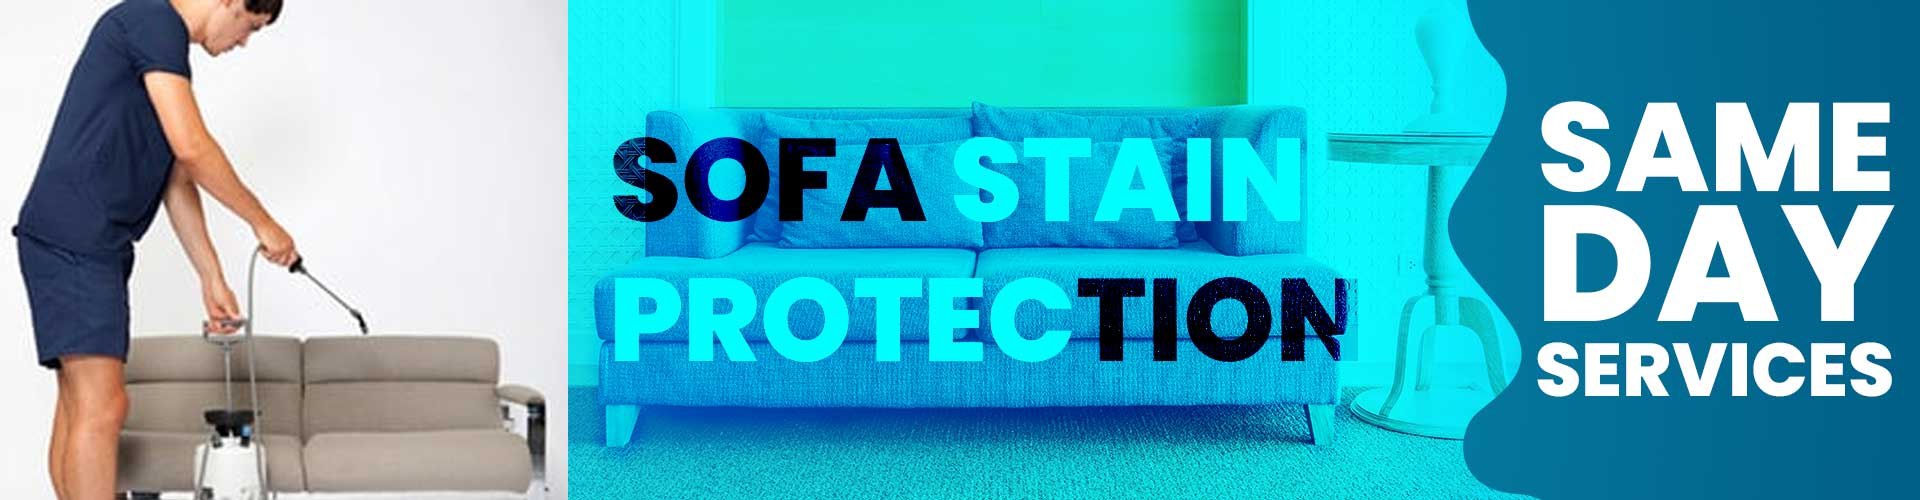 Sofa Stain Protection